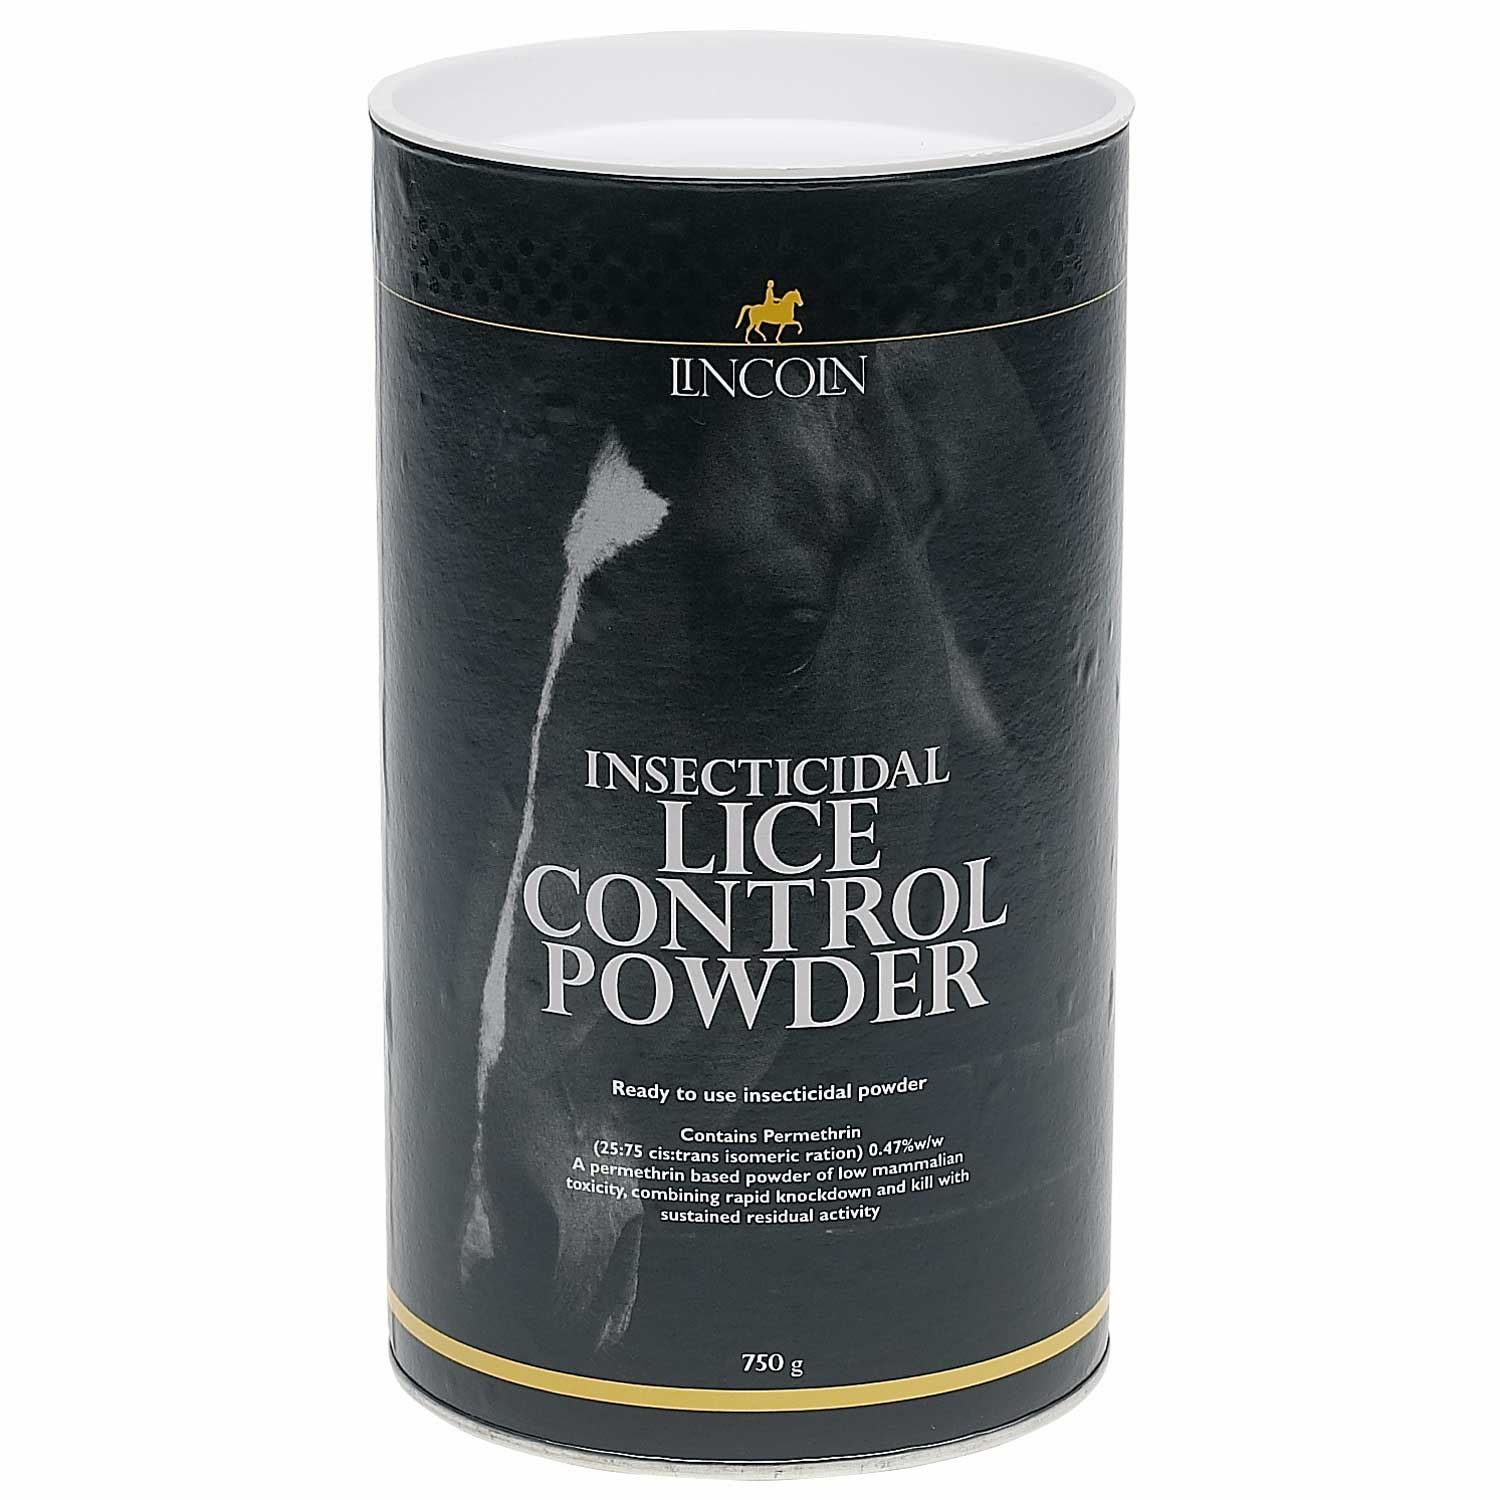 Lincoln Insecticidal Lice Control Powder for Horses